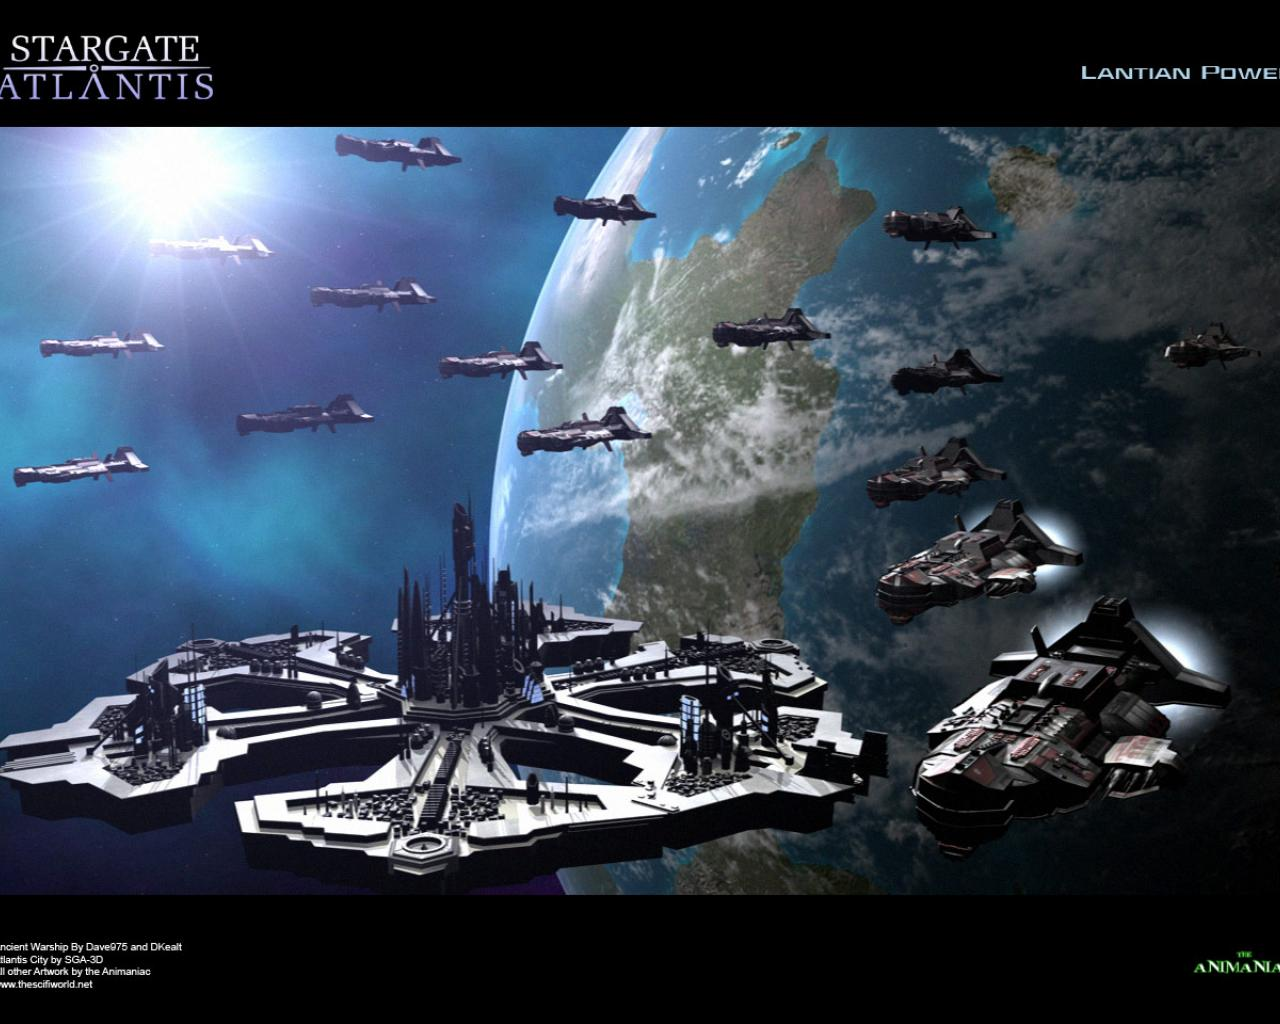 Stargate wallpaper   176552   High Quality and Resolution 1280x1024